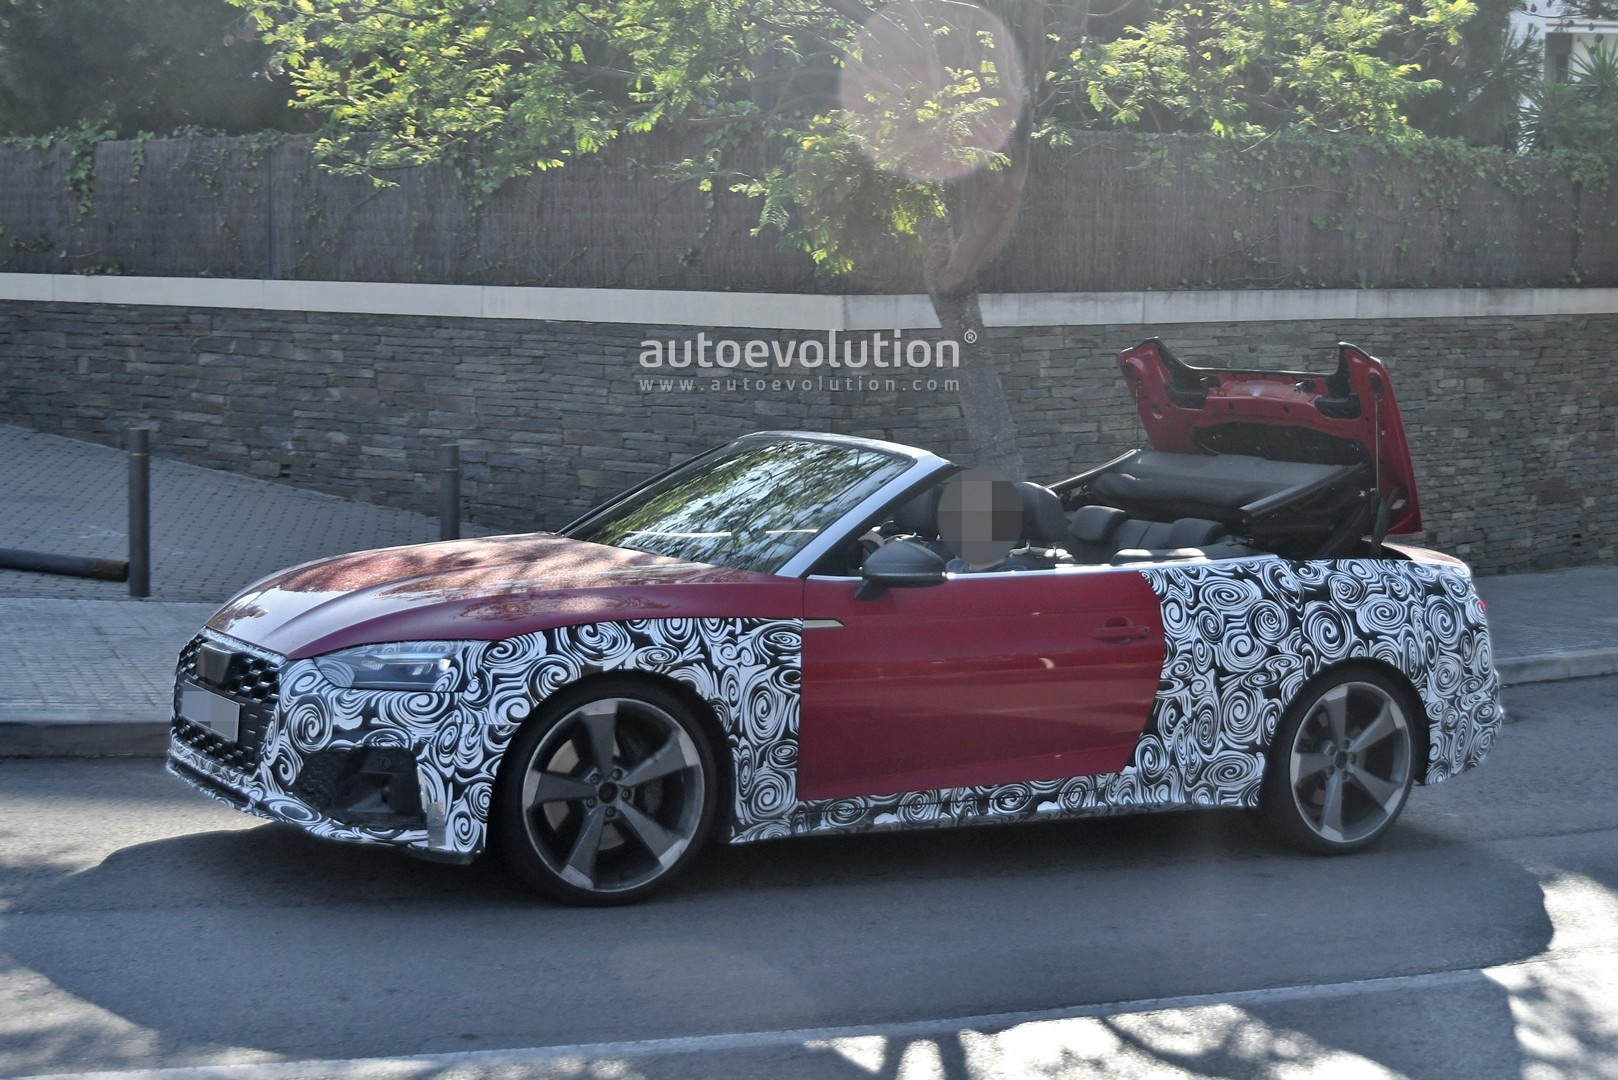 2020 - [Audi] A5 Coupé/Cab/SB restylée 2021-audi-s5-facelift-spied-with-cabrio-top-in-action-shows-minimal-changes_4